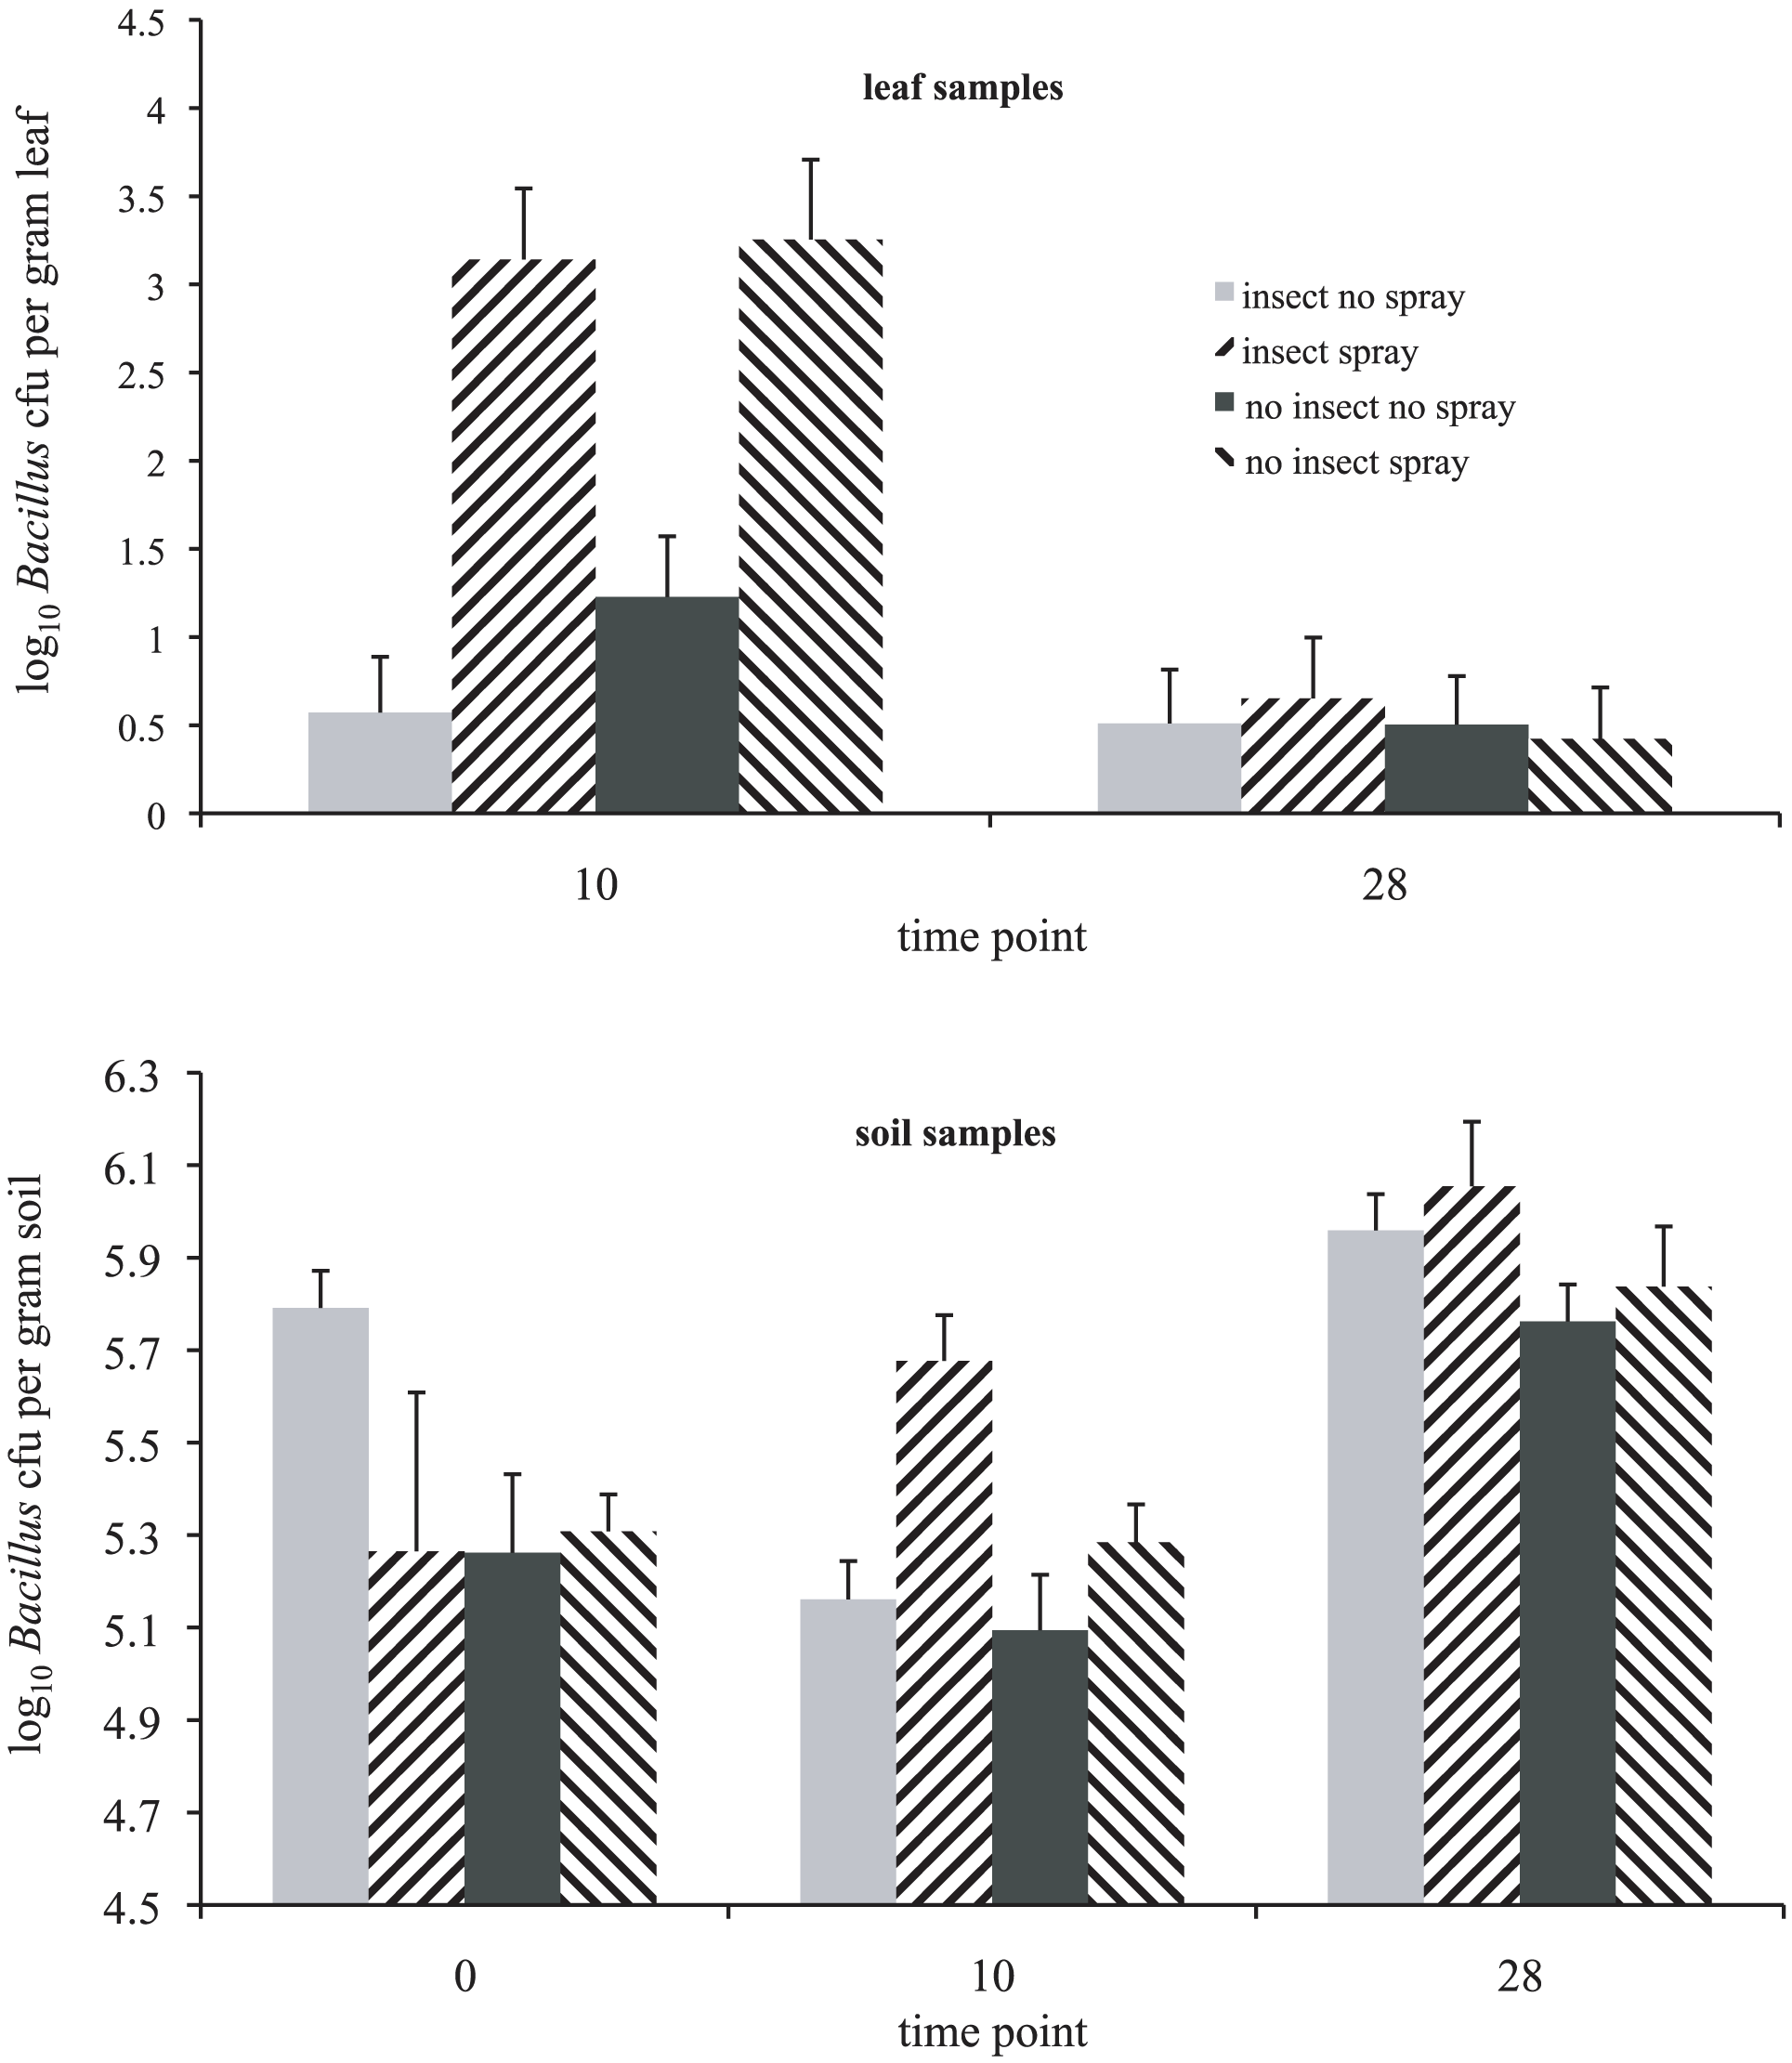 The effect of the presence of insect hosts and biopesticide application on bacterial abundance of the <i>Bacillus cereus</i> group in experimental enclosures.